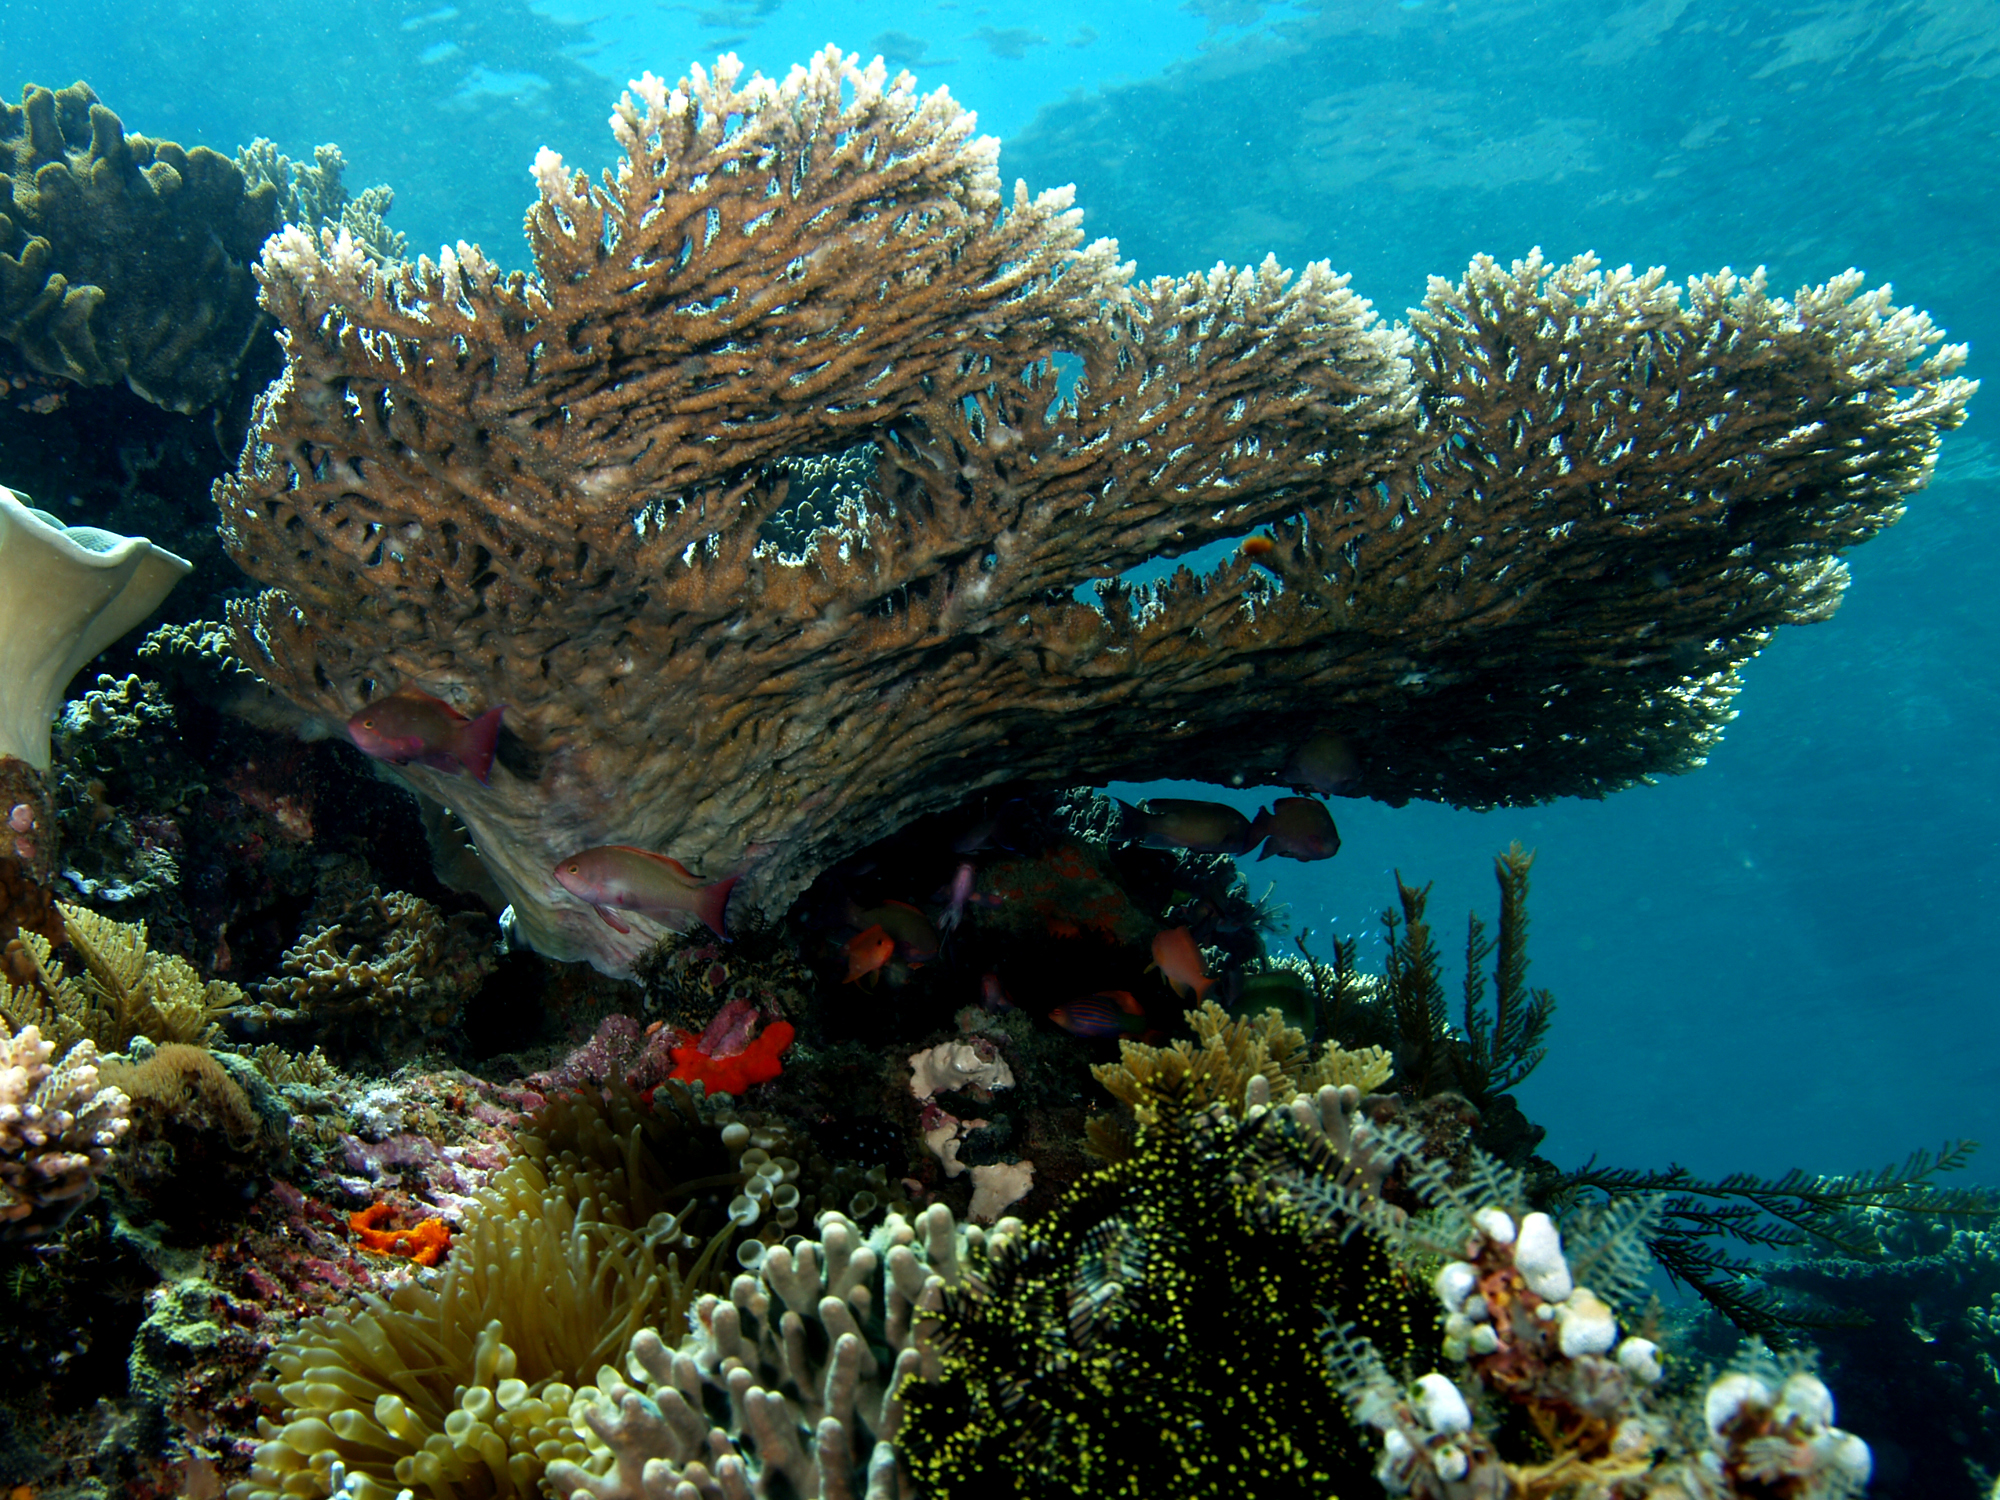 File:Acropora latistella (Table coral).jpg - Wikipedia